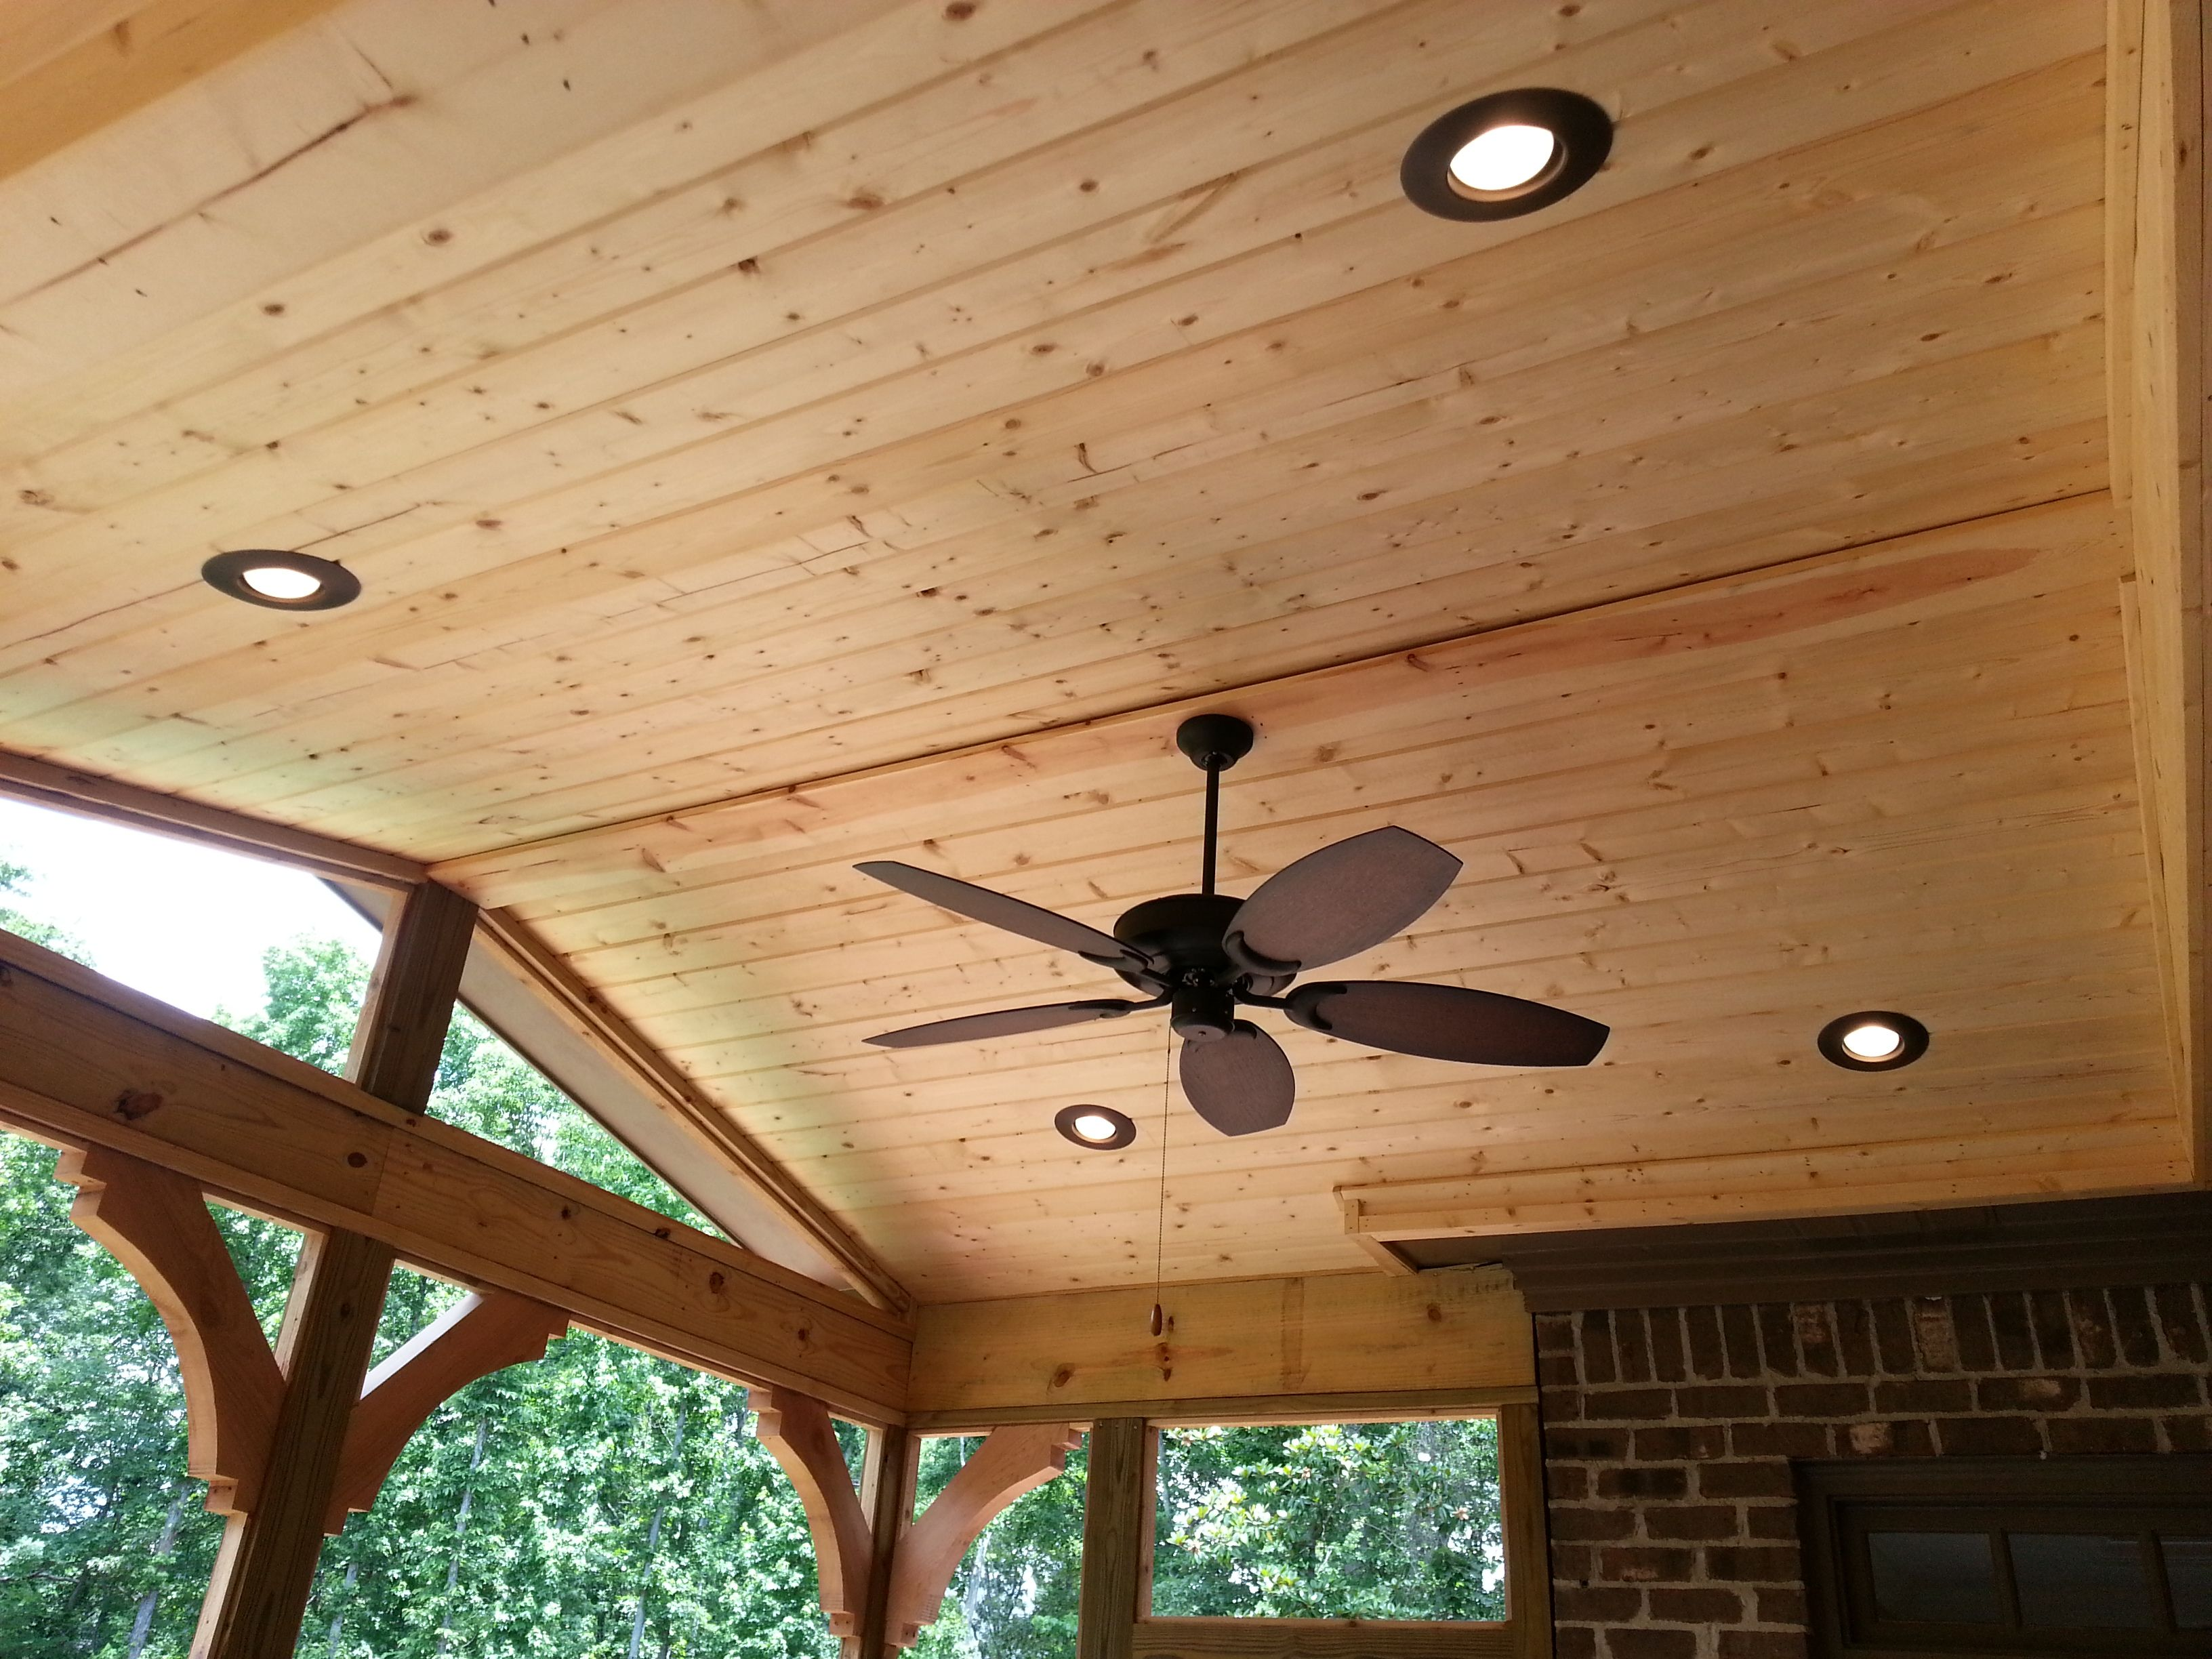 finished ceiling with ceiling fan and can lights design ideas archadeck - Patio Ceiling Lighting Ideas